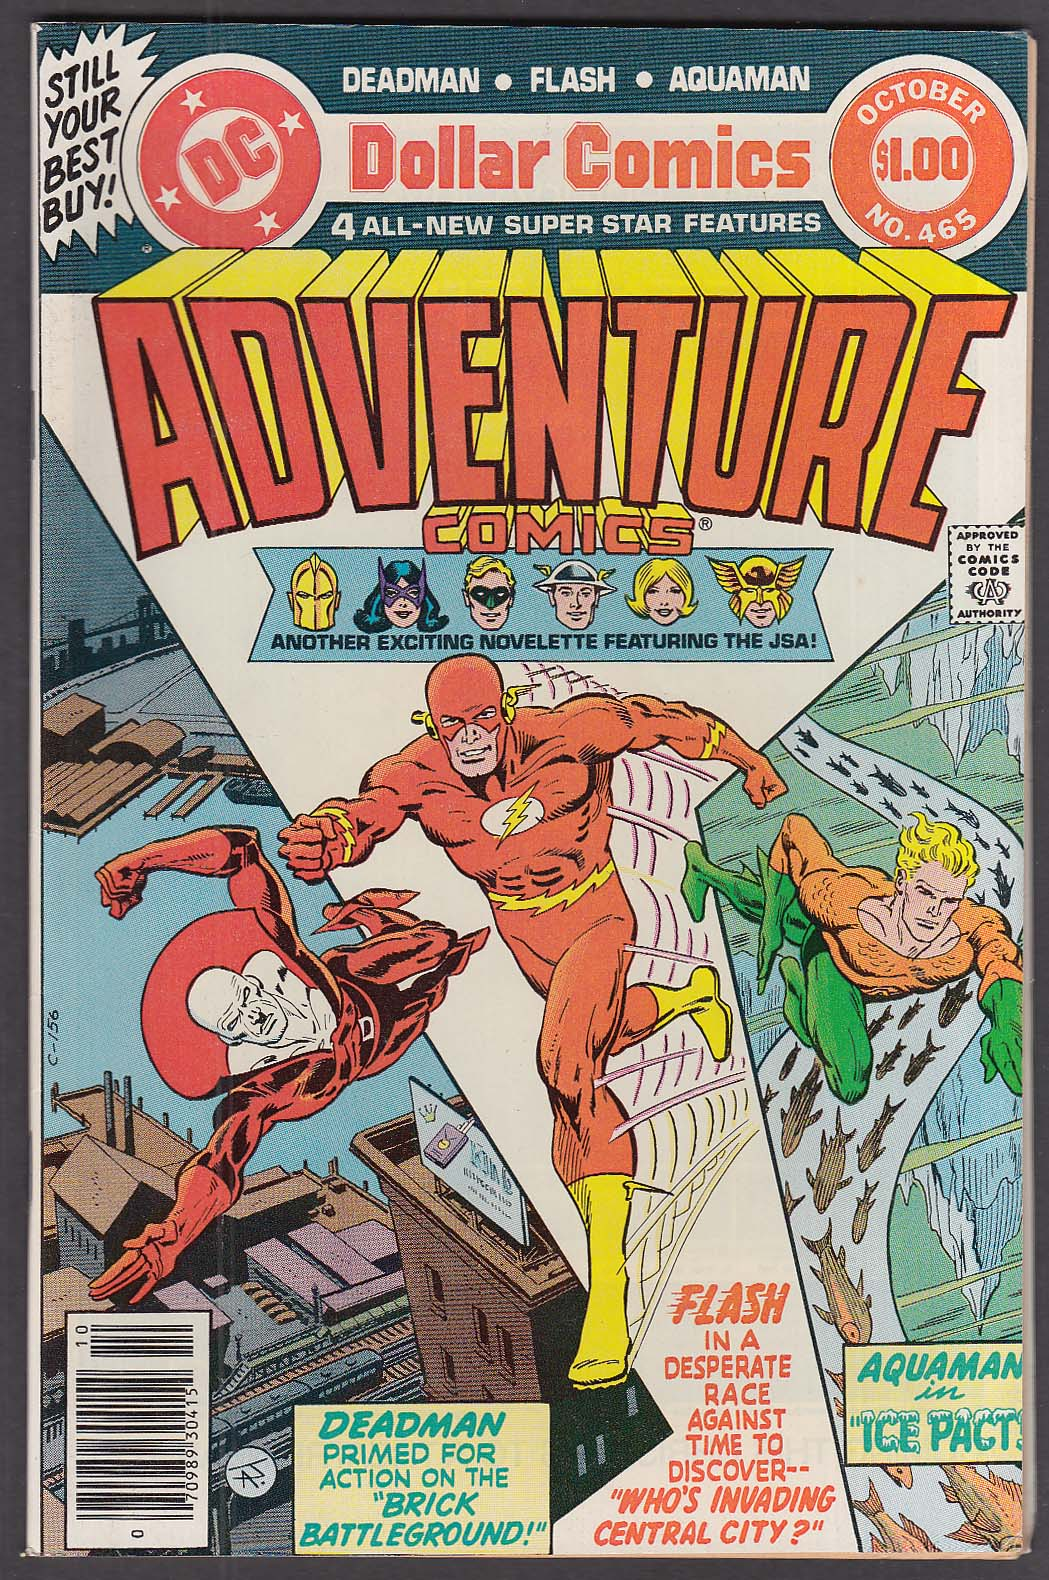 ADVENTURE COMICS #465 DC comic book 10 1979 Deadman Flash Aquaman